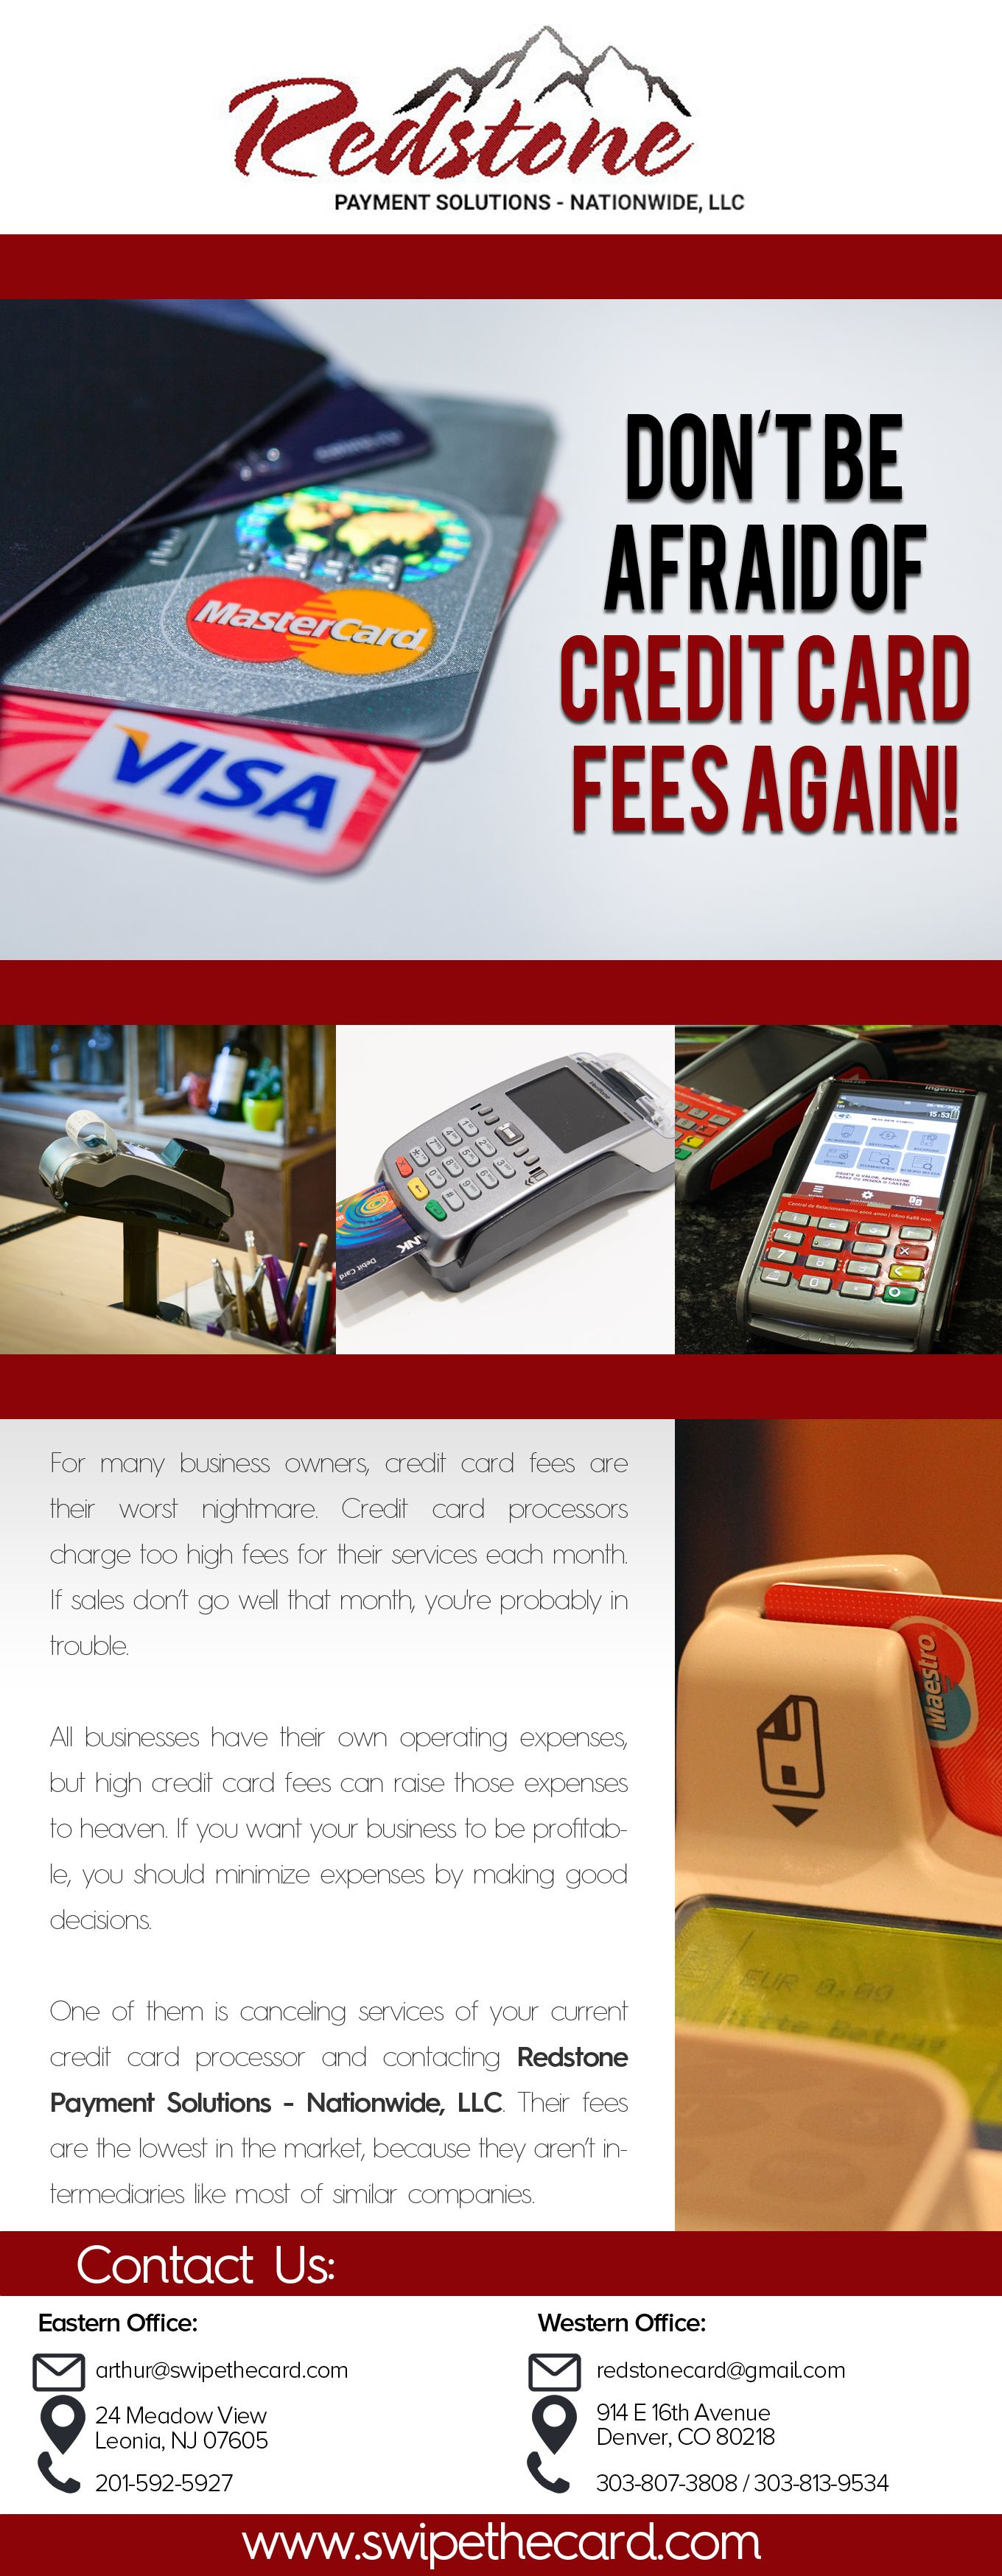 Redstone Nationwide is a direct credit card processor